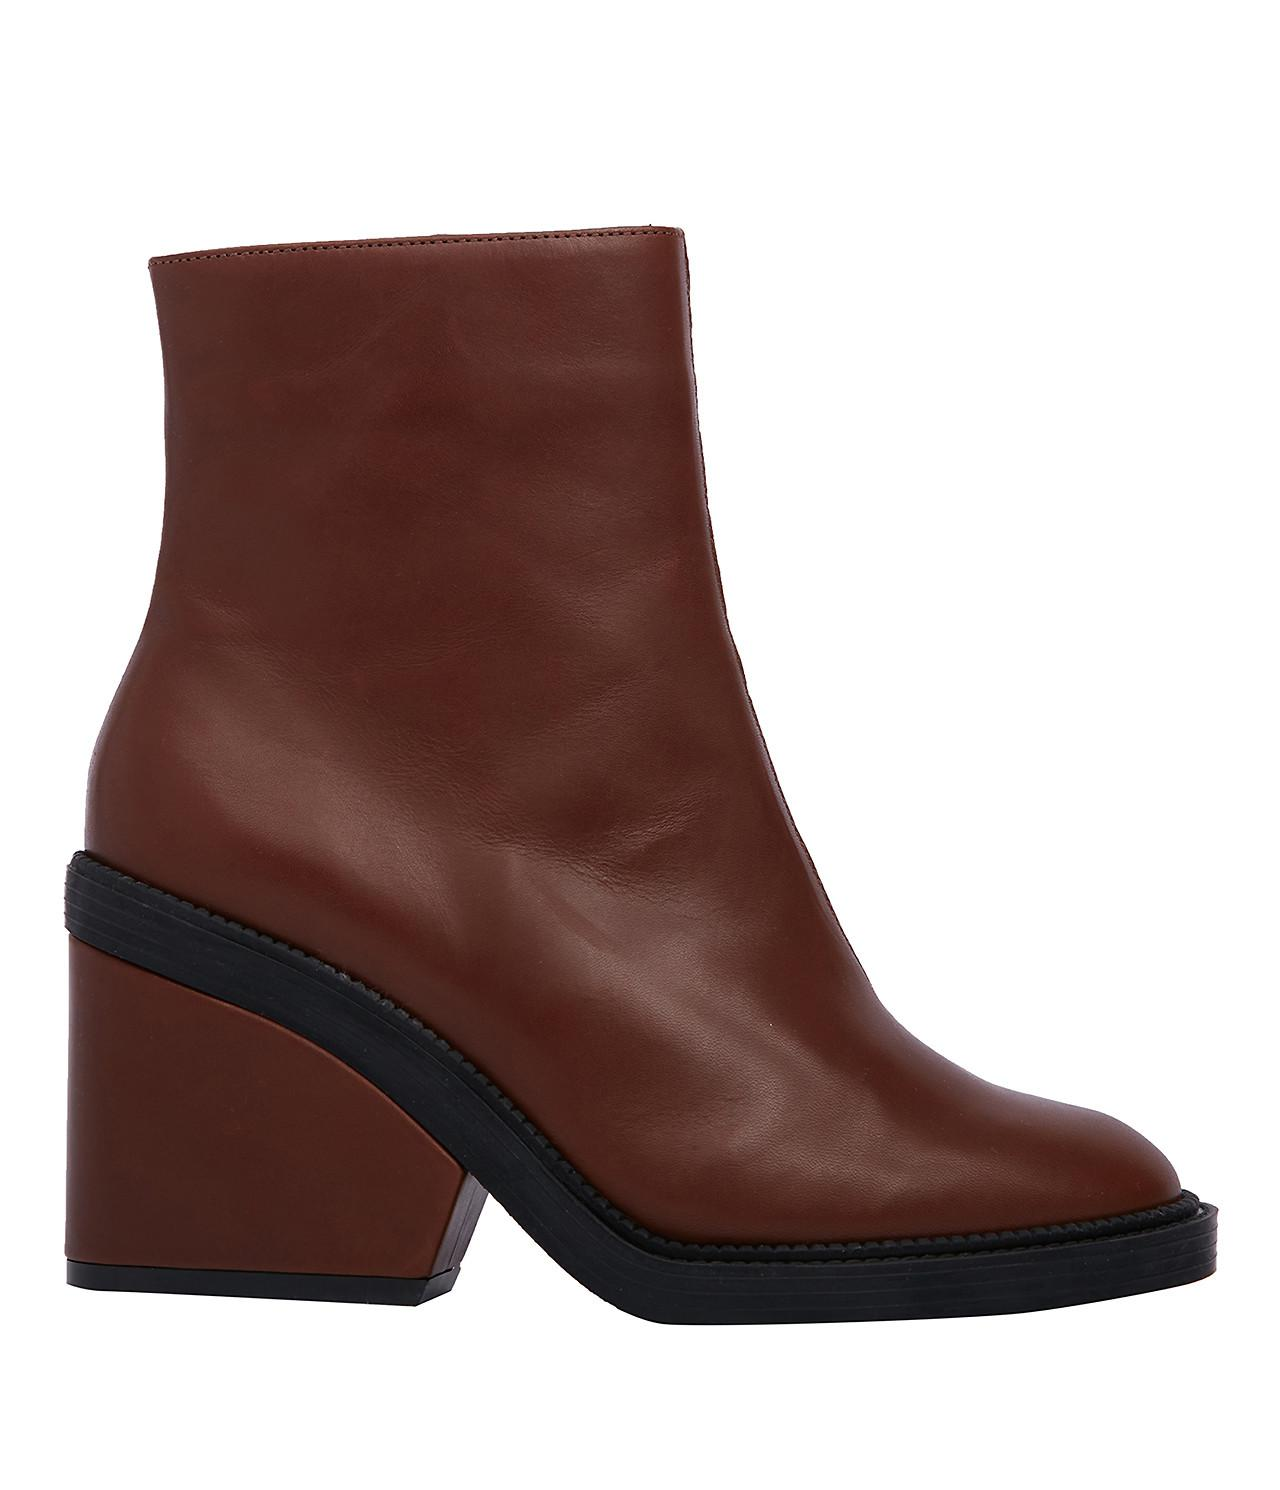 Robert Clergerie Leather Cap-Toe Ankle Boots buy cheap very cheap buy cheap cheap ti9l8